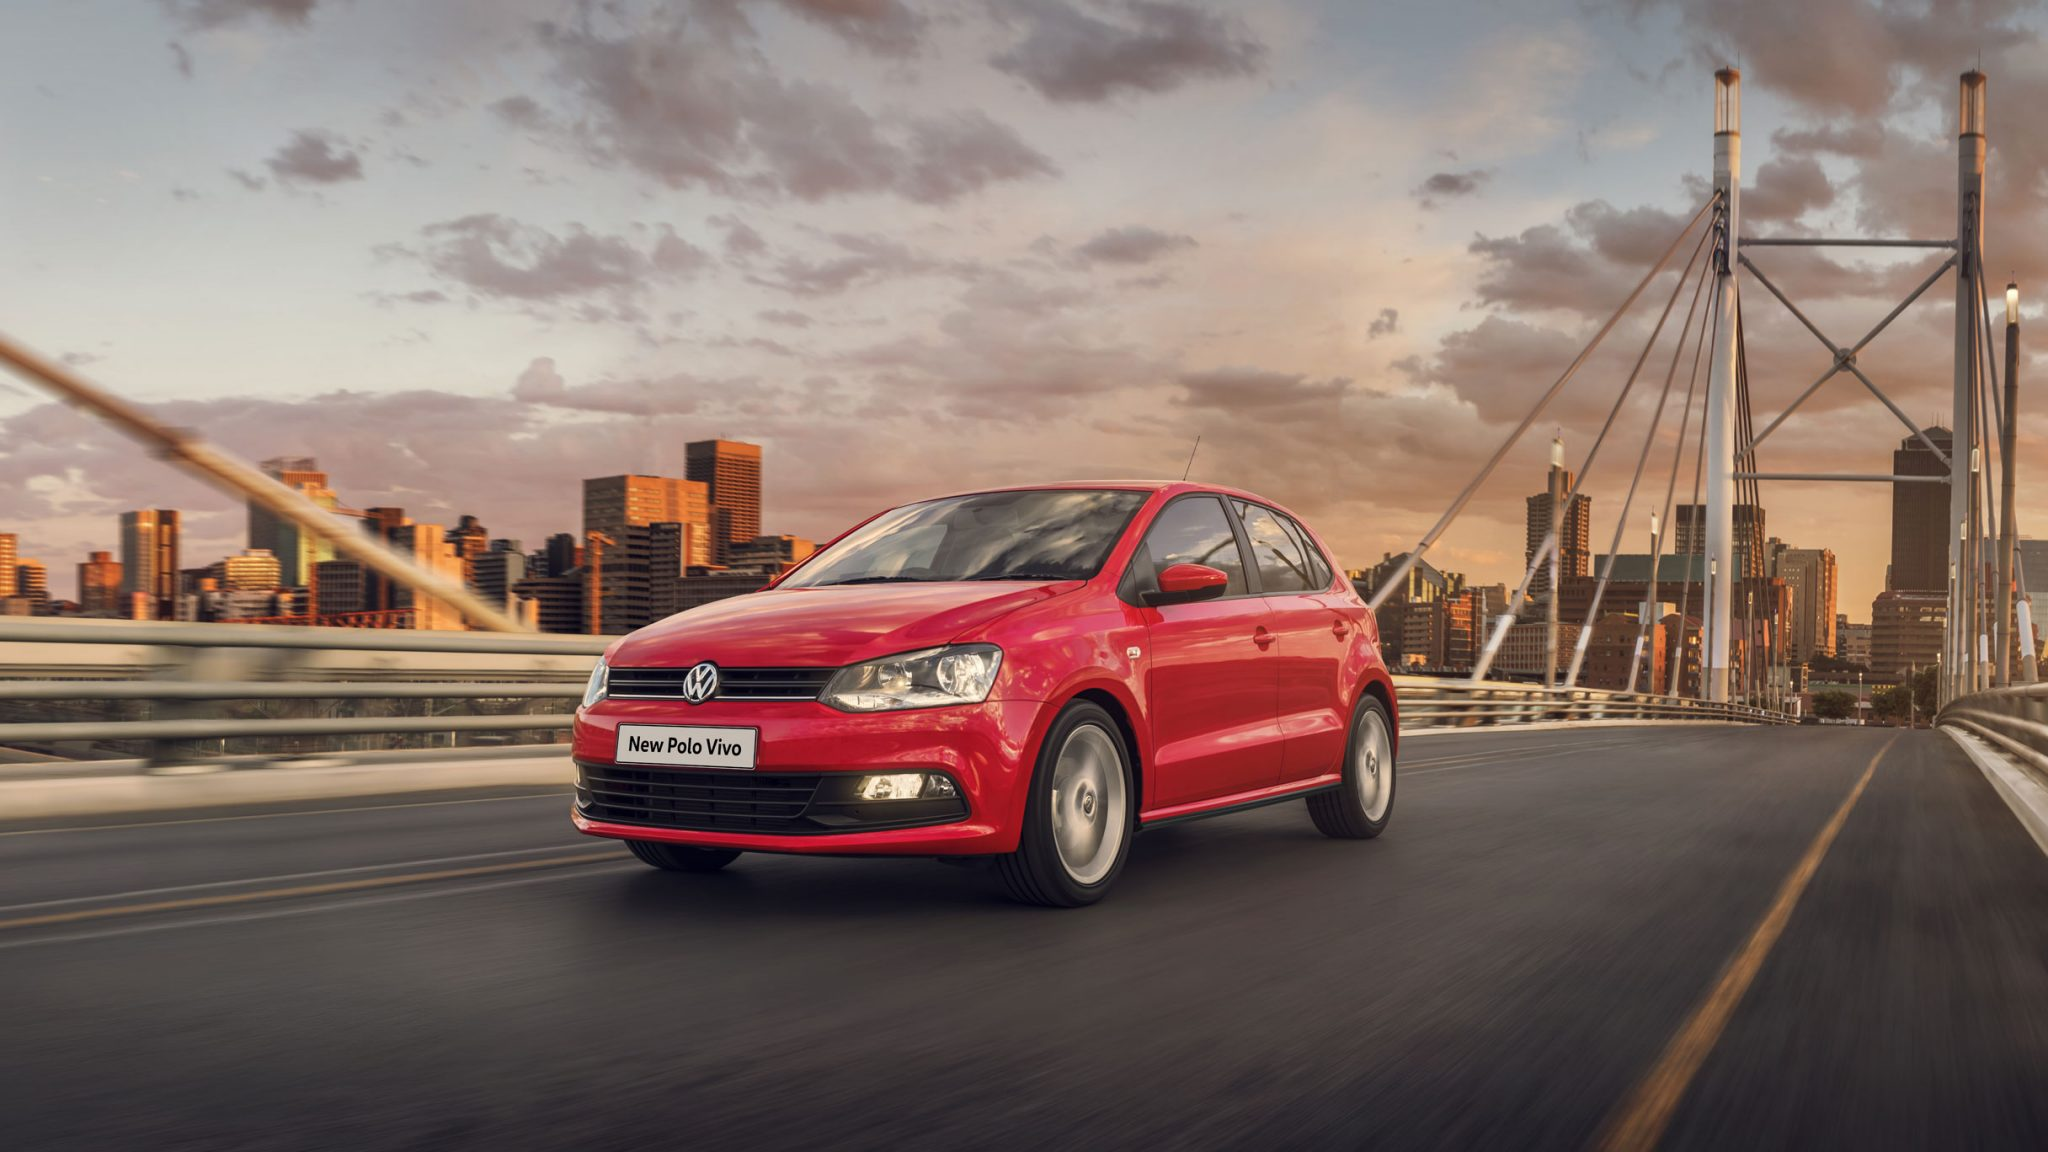 VW Polo vivo price per month